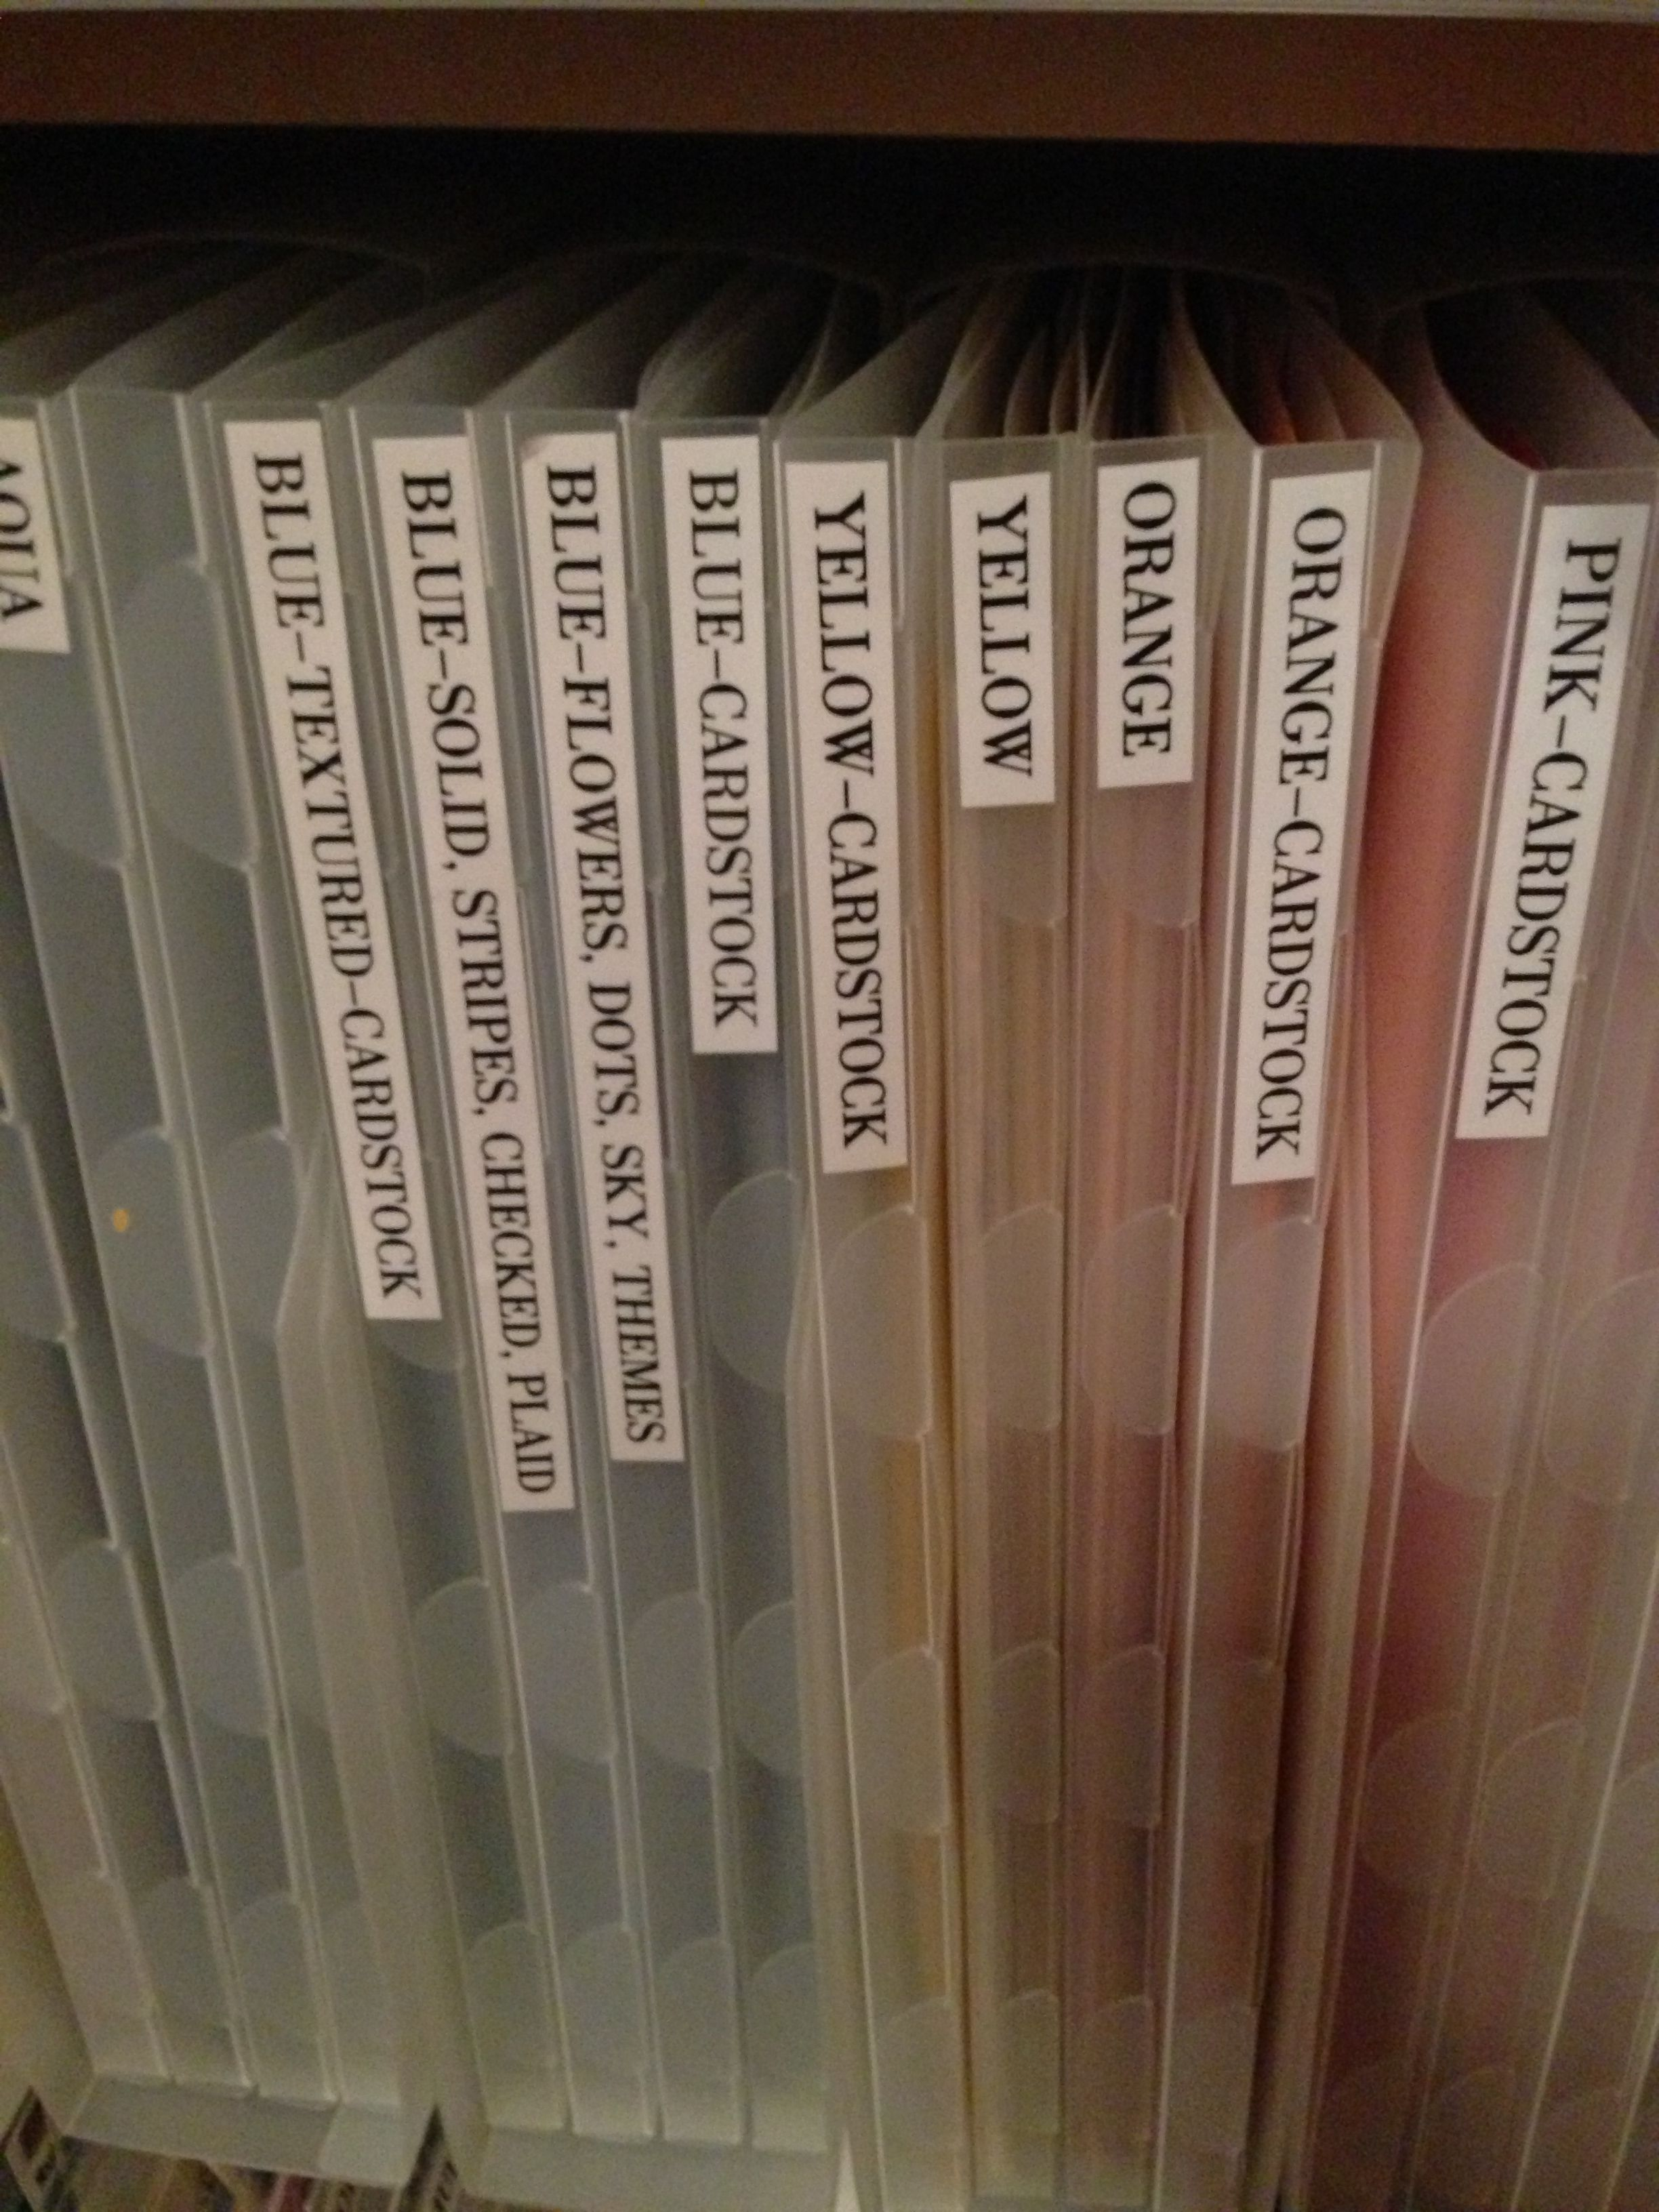 Organizing scrapbook paper by color, weight and theme